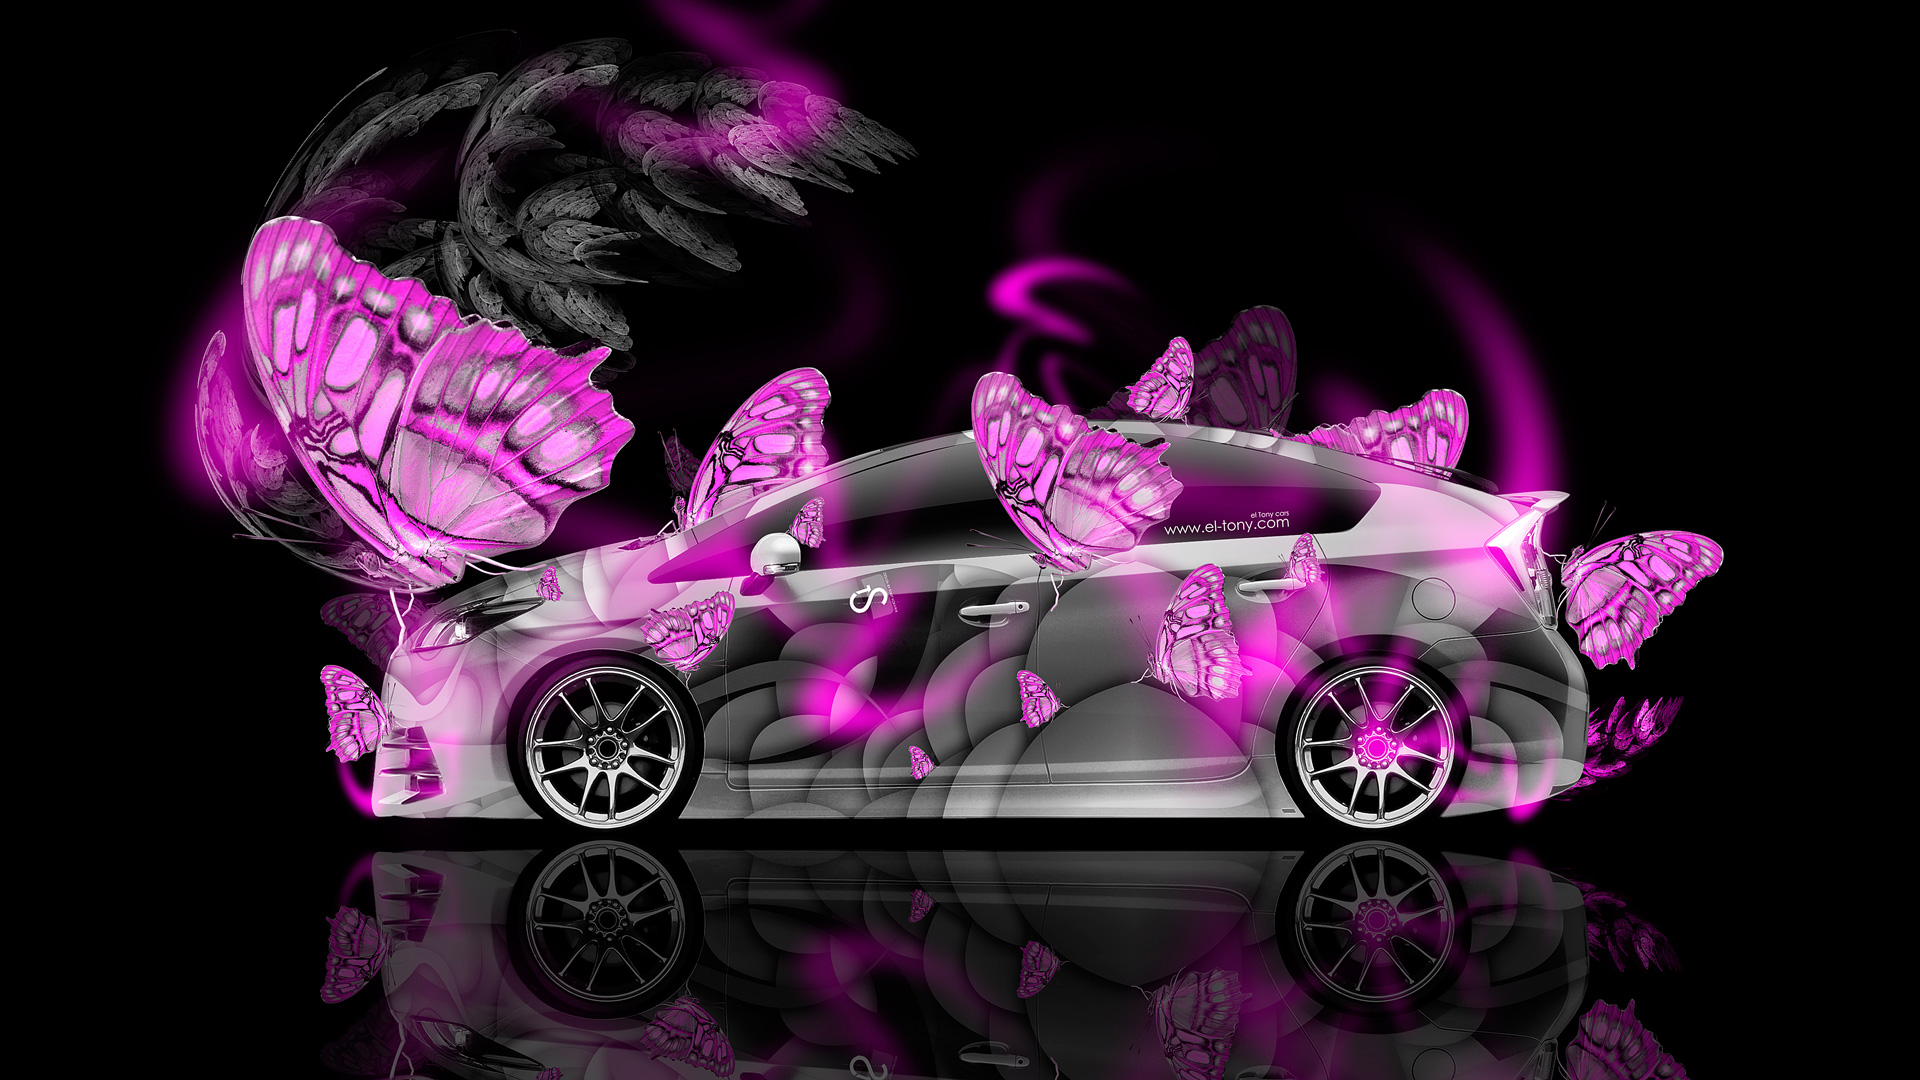 Hd Jdm Car Wallpapers Toyota Prius Hybrid Fantasy Butterfly Neon Car 2014 El Tony